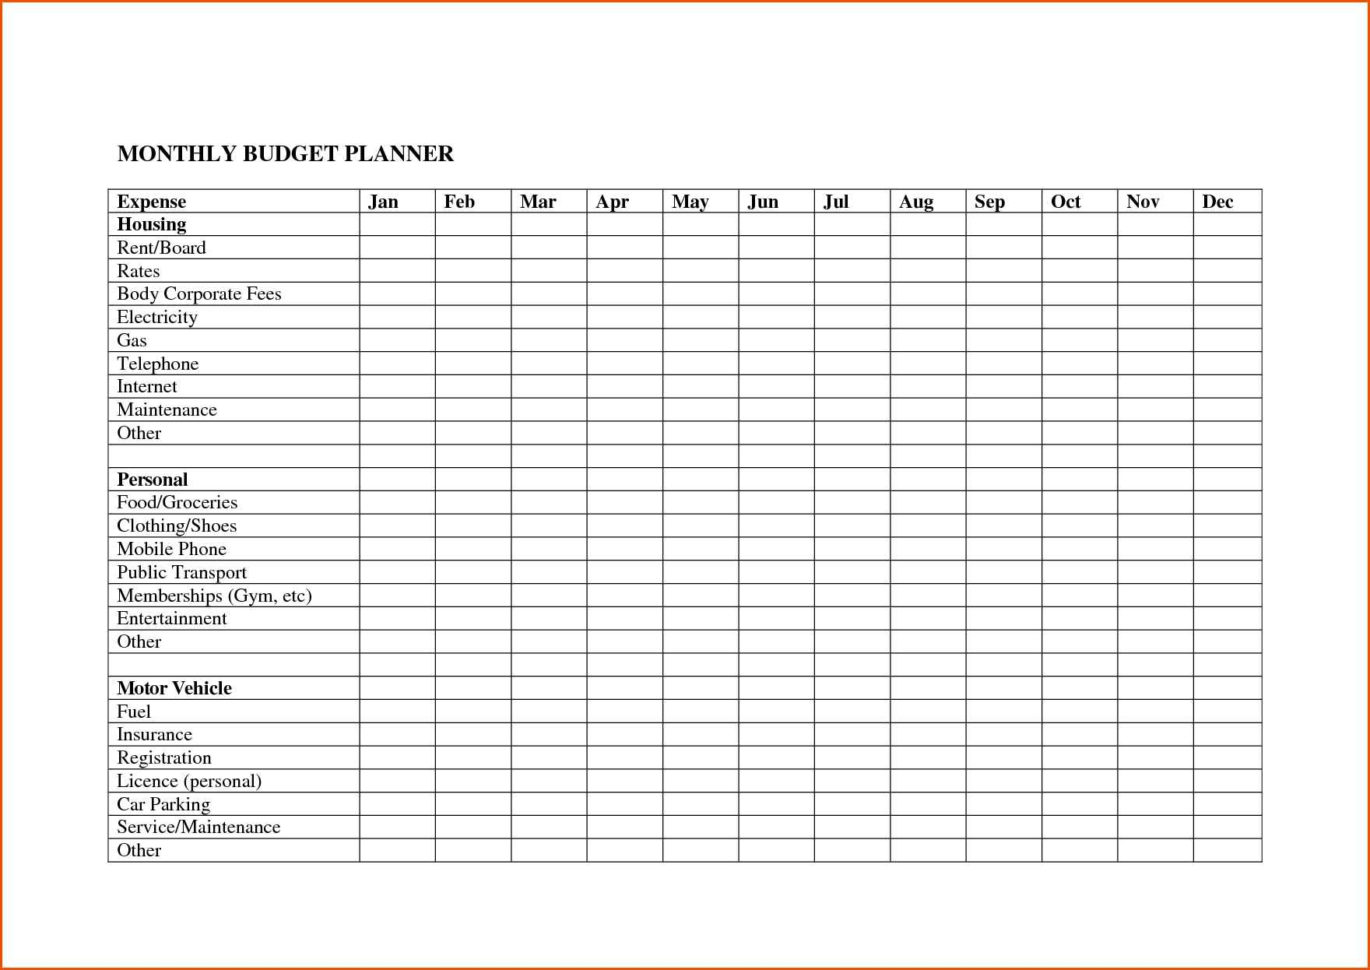 Monthly Bill Spreadsheet Template Free Intended For Monthly Bill Spreadsheet Template Freeel Templates Online Budget